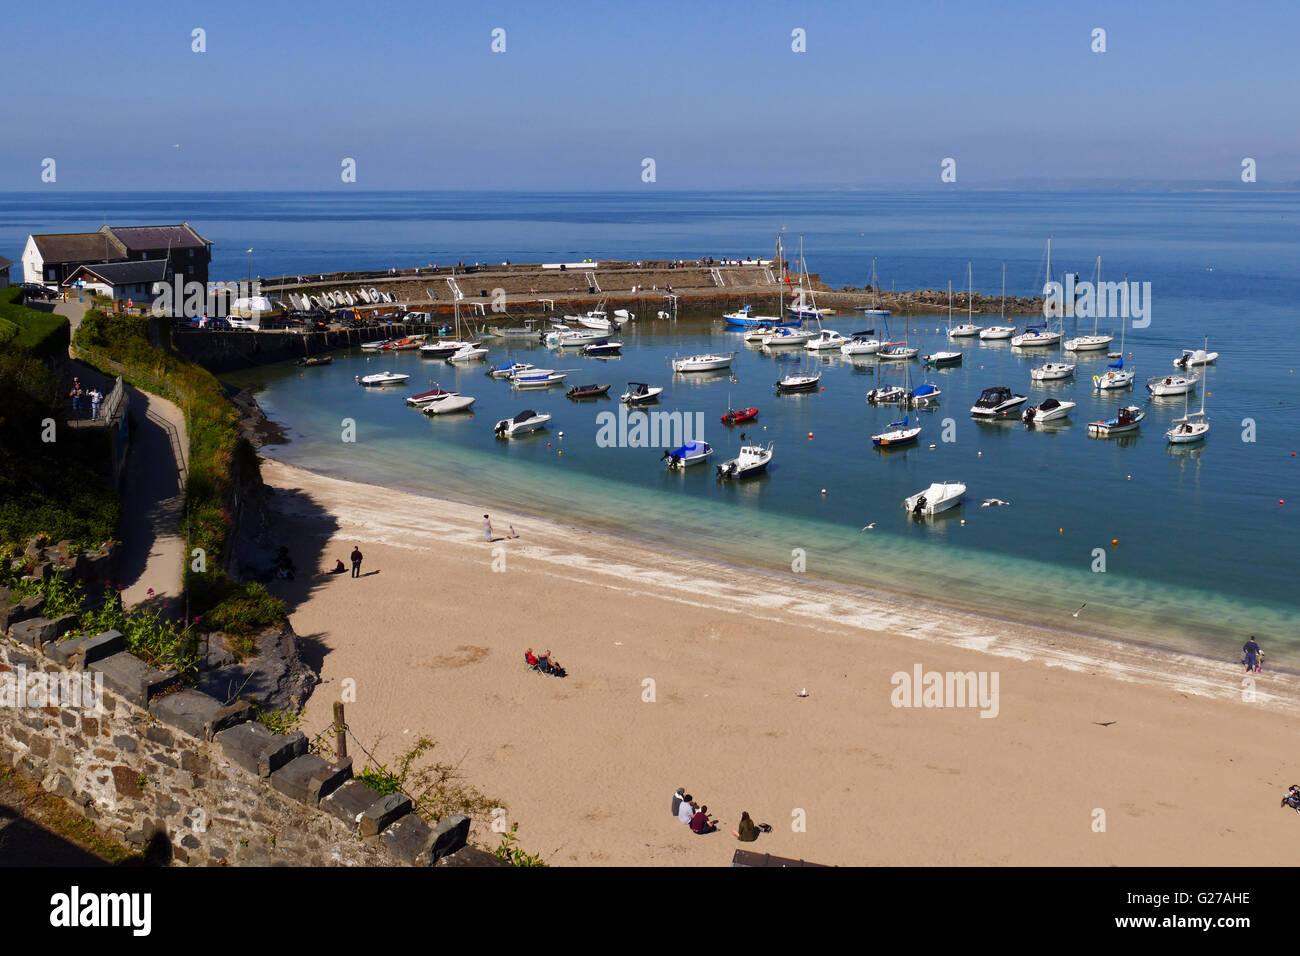 The harbour and beach at New Quay, Ceredigion, Wales - Stock Image